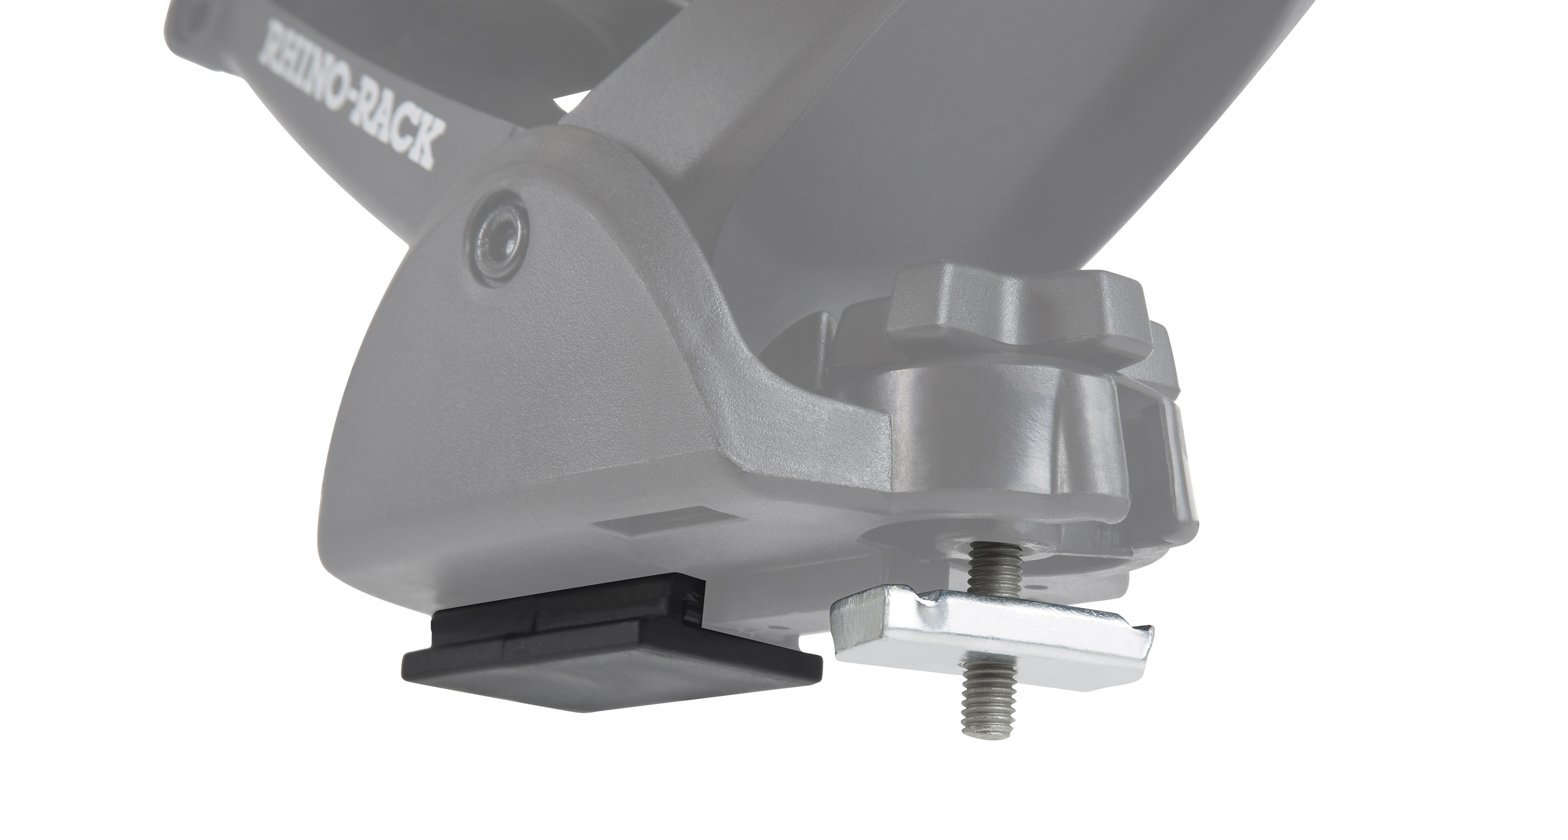 Rhino Rack HD-FK2 Kayak Carrier Fitting Kit for use with Nautic 580/581